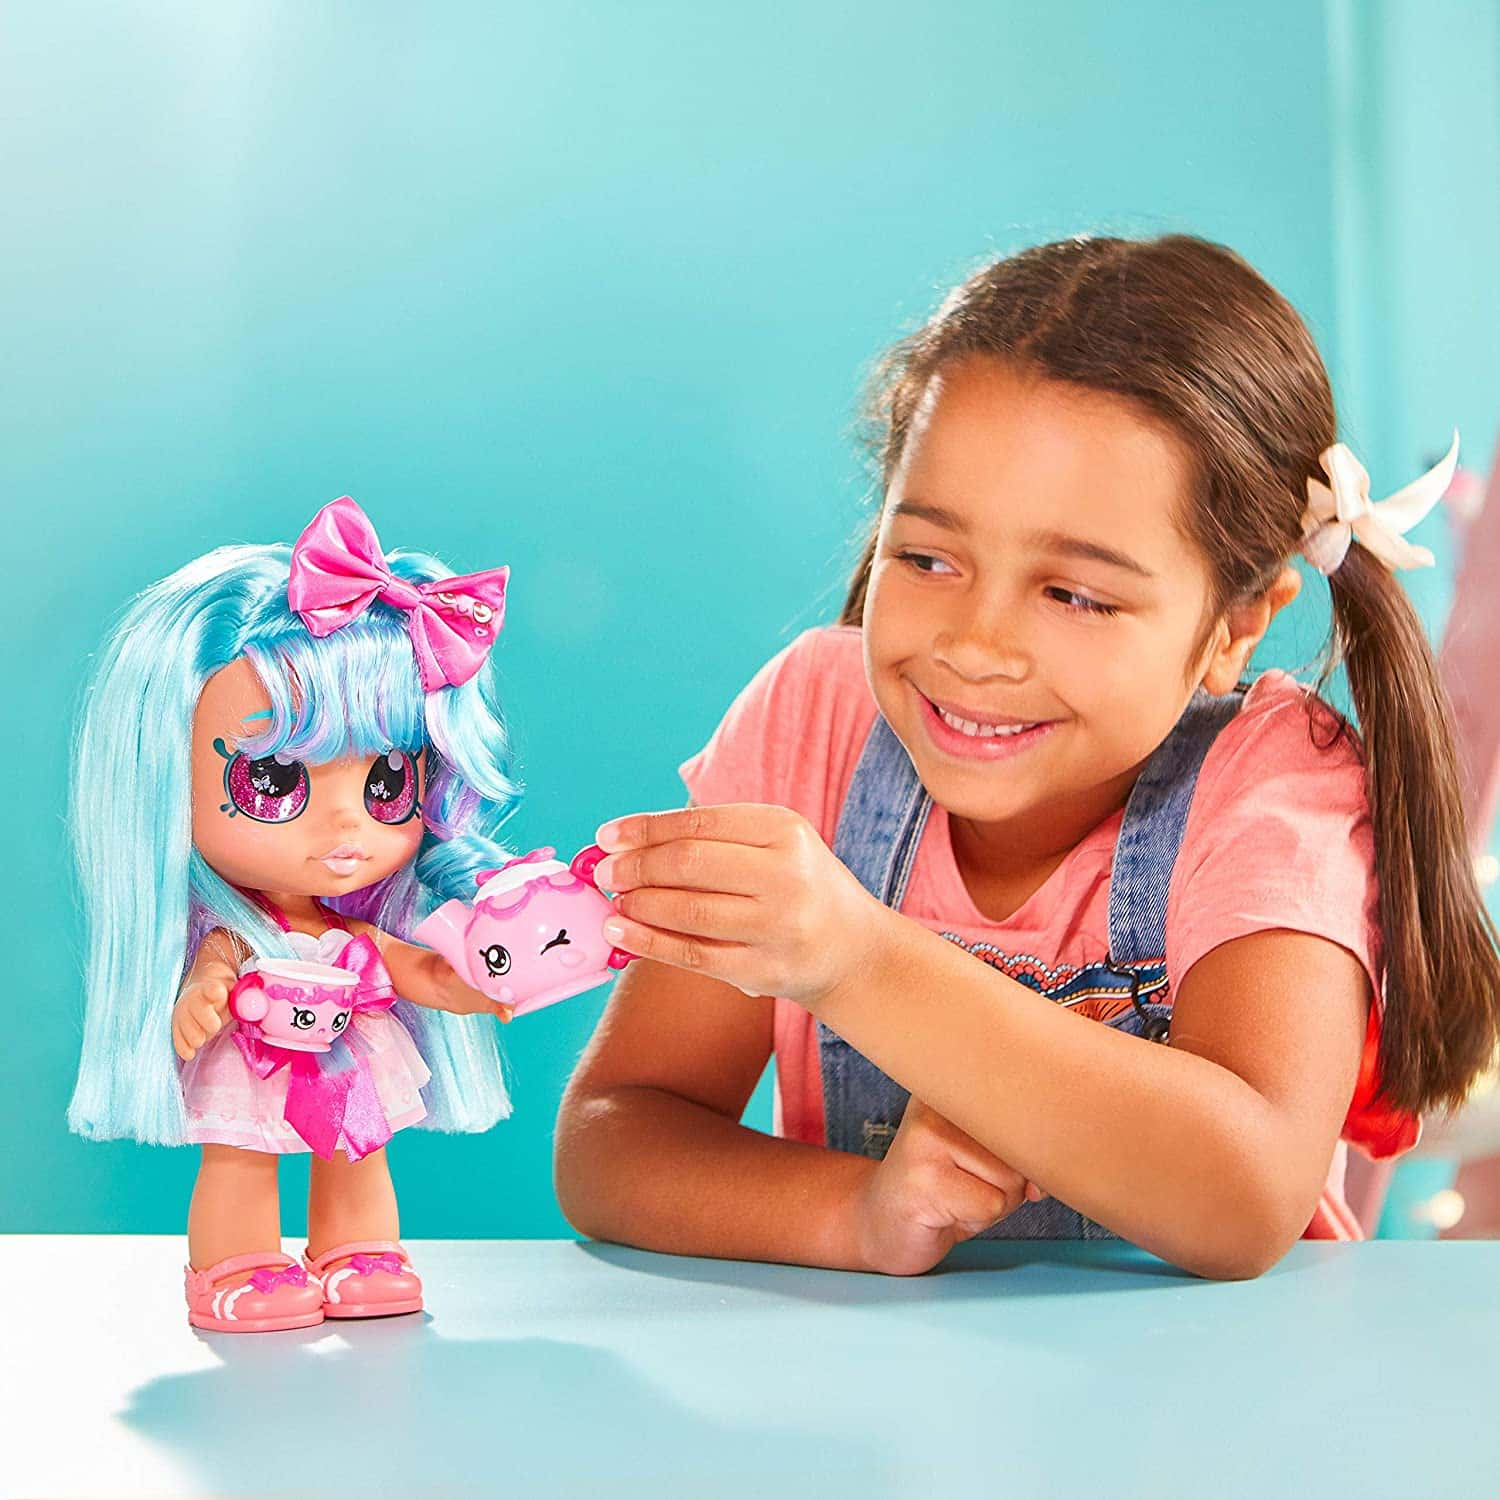 Kindi kids fun time dolls